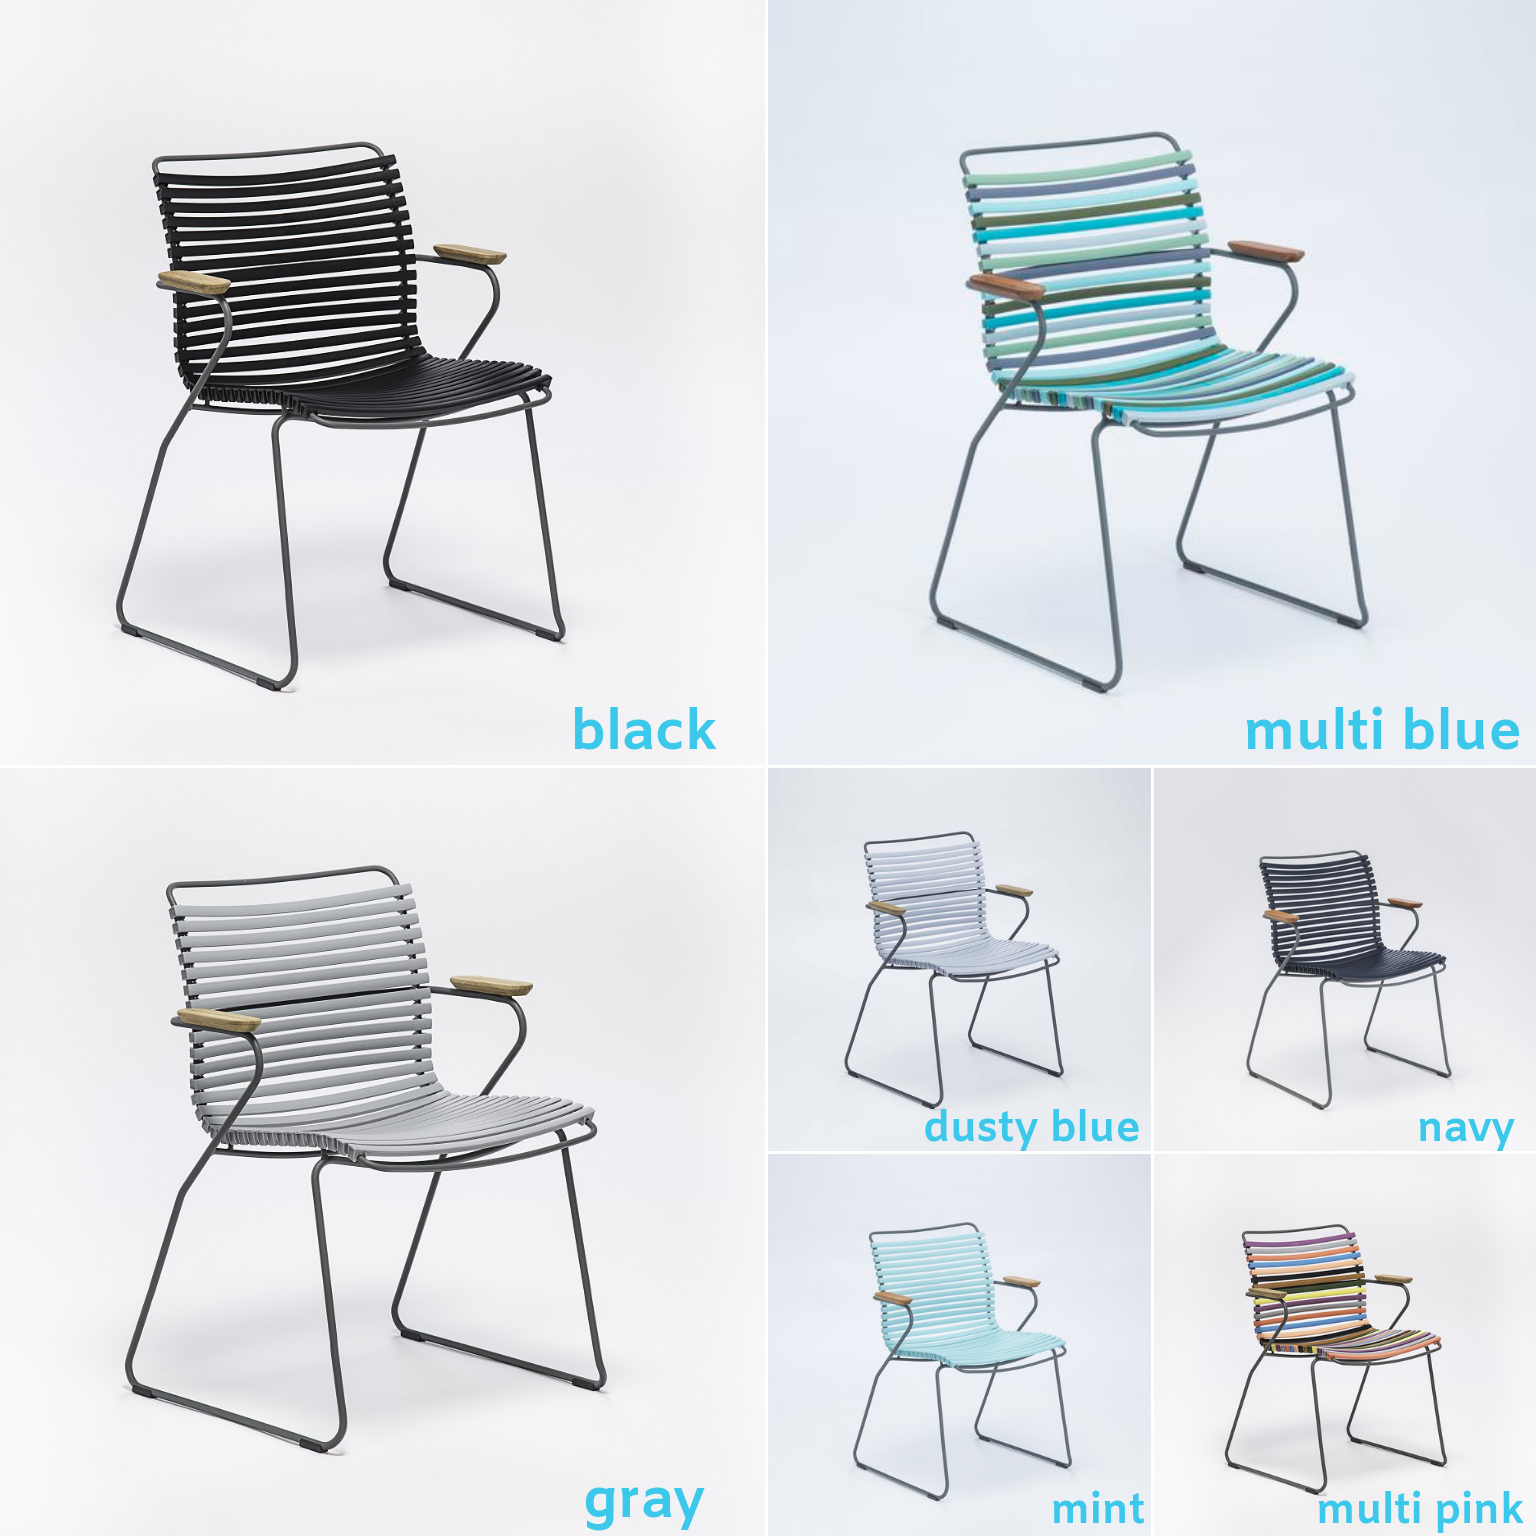 Playnk Dining Chairs in a full array of color options